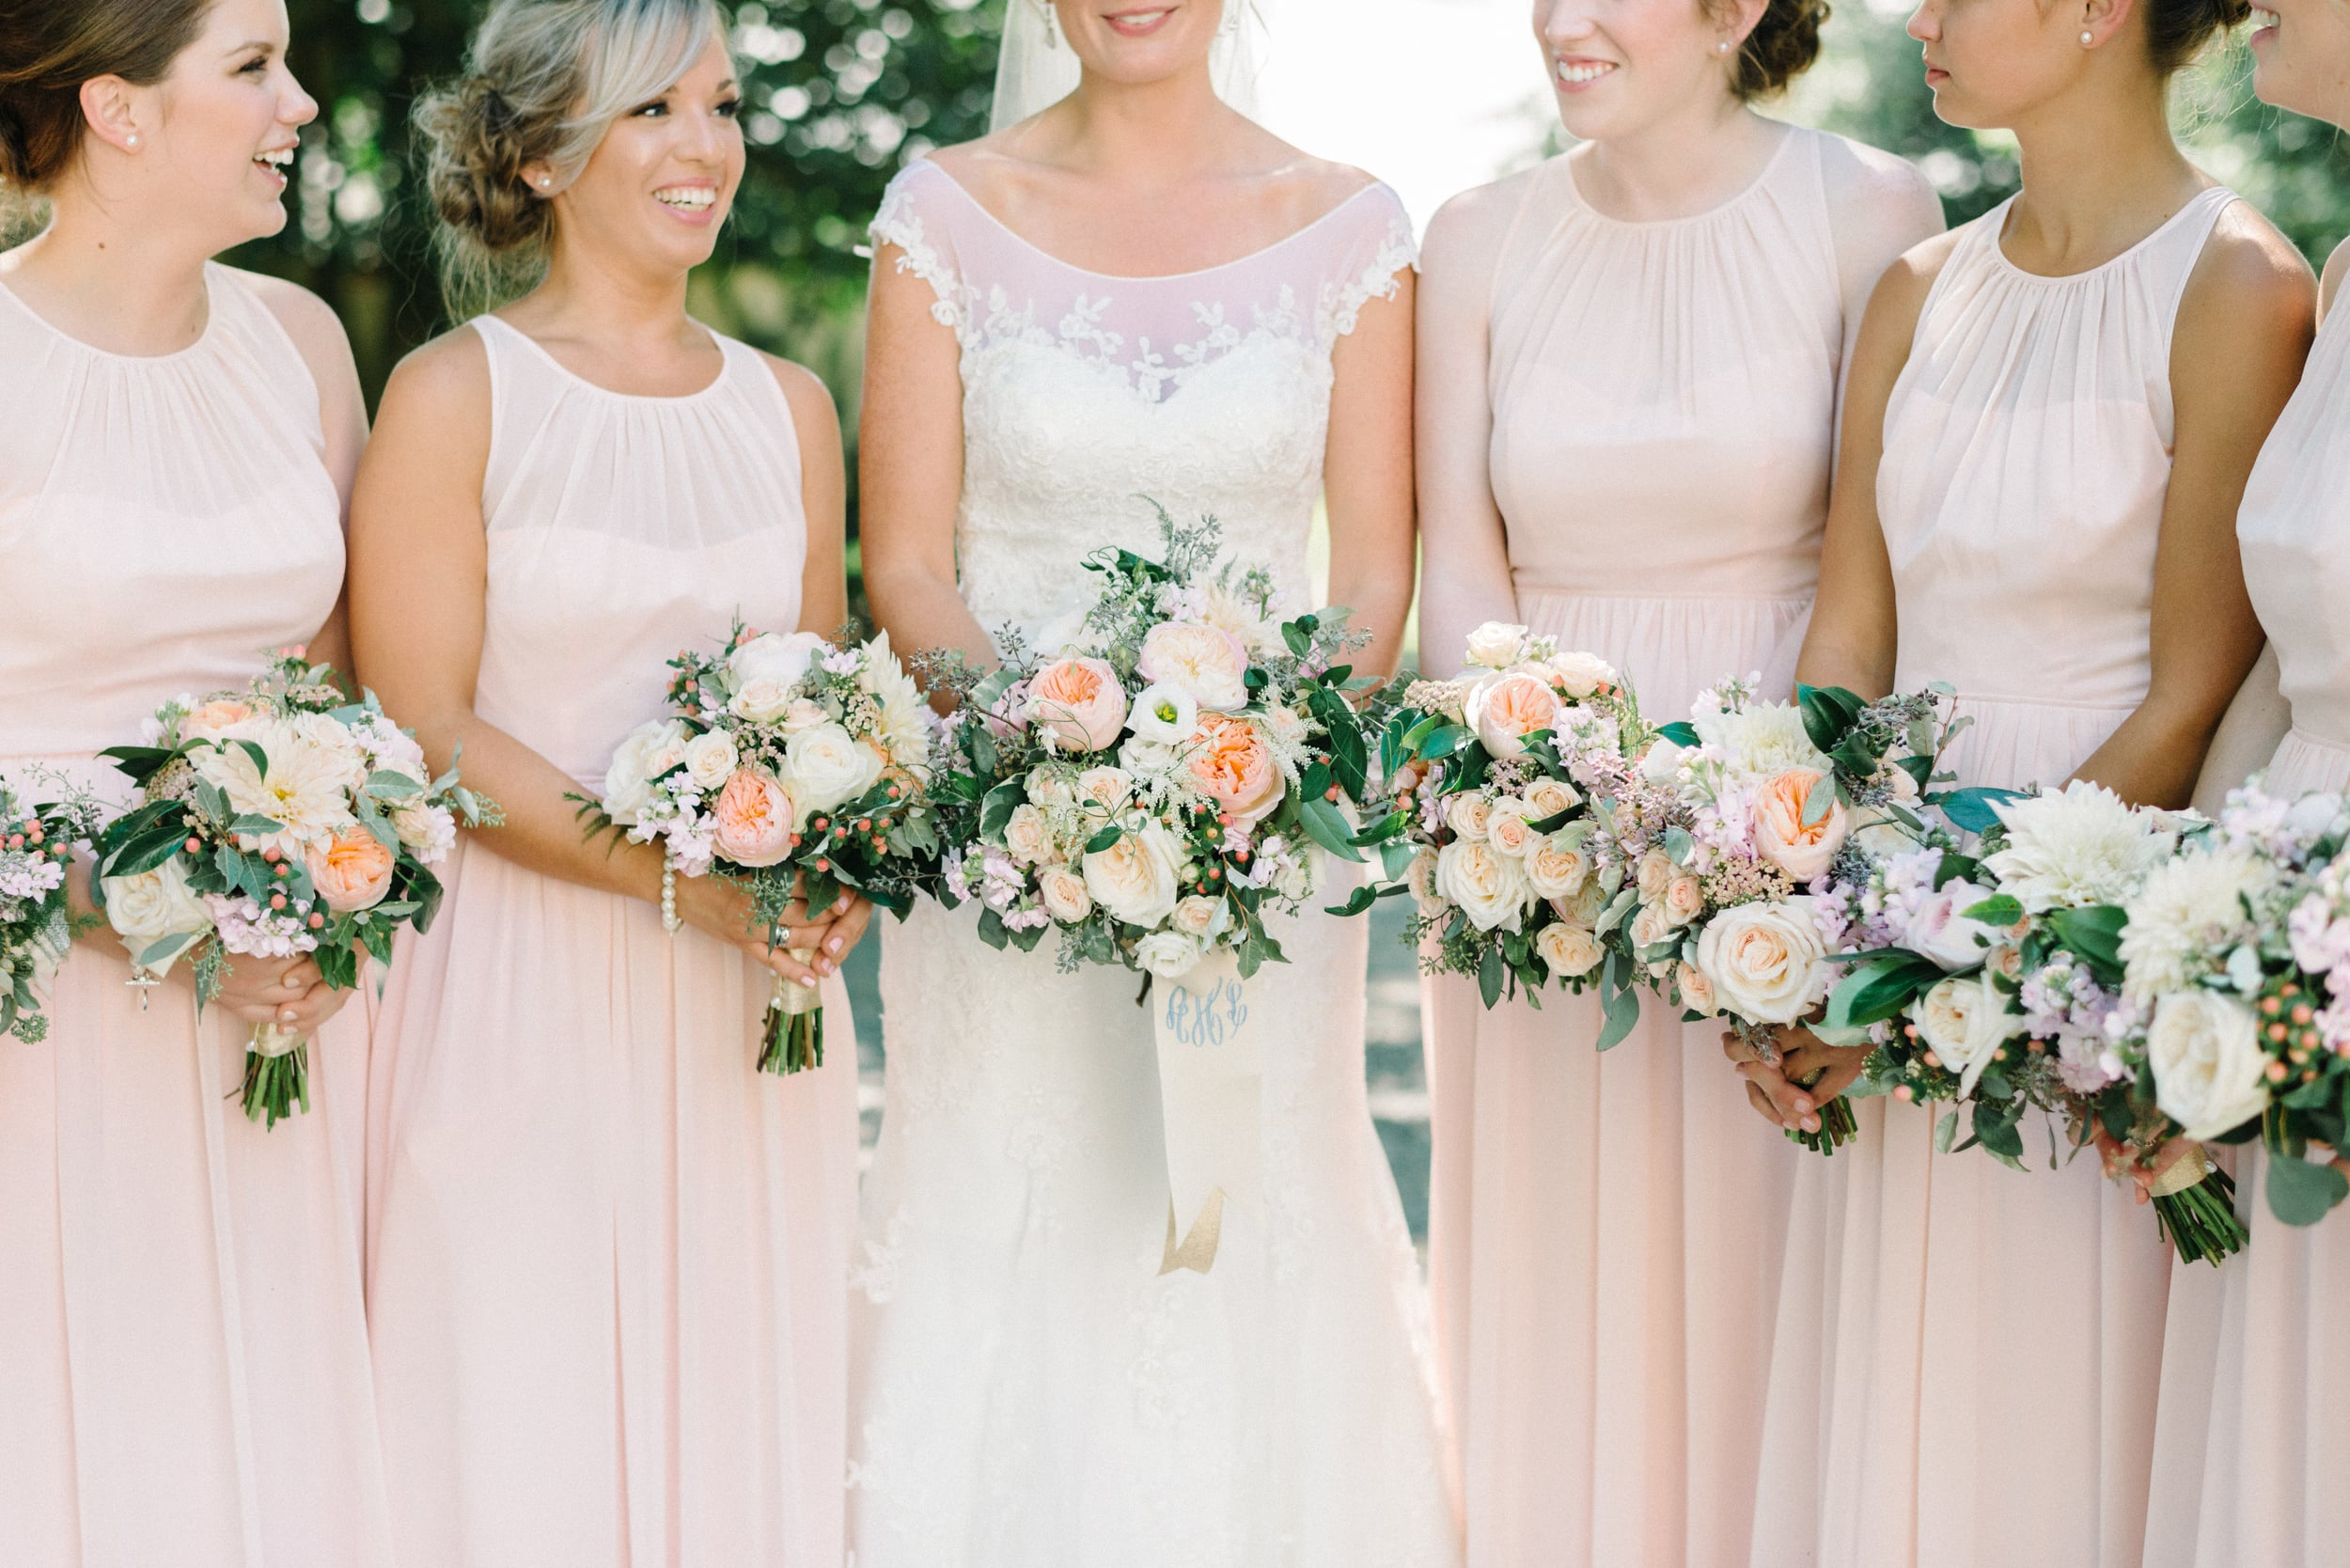 A Garden Party Florist, Inn at Fernbrook Farms, Michelle Lange Photography, Blush, Monogram, Bouquet Wrap